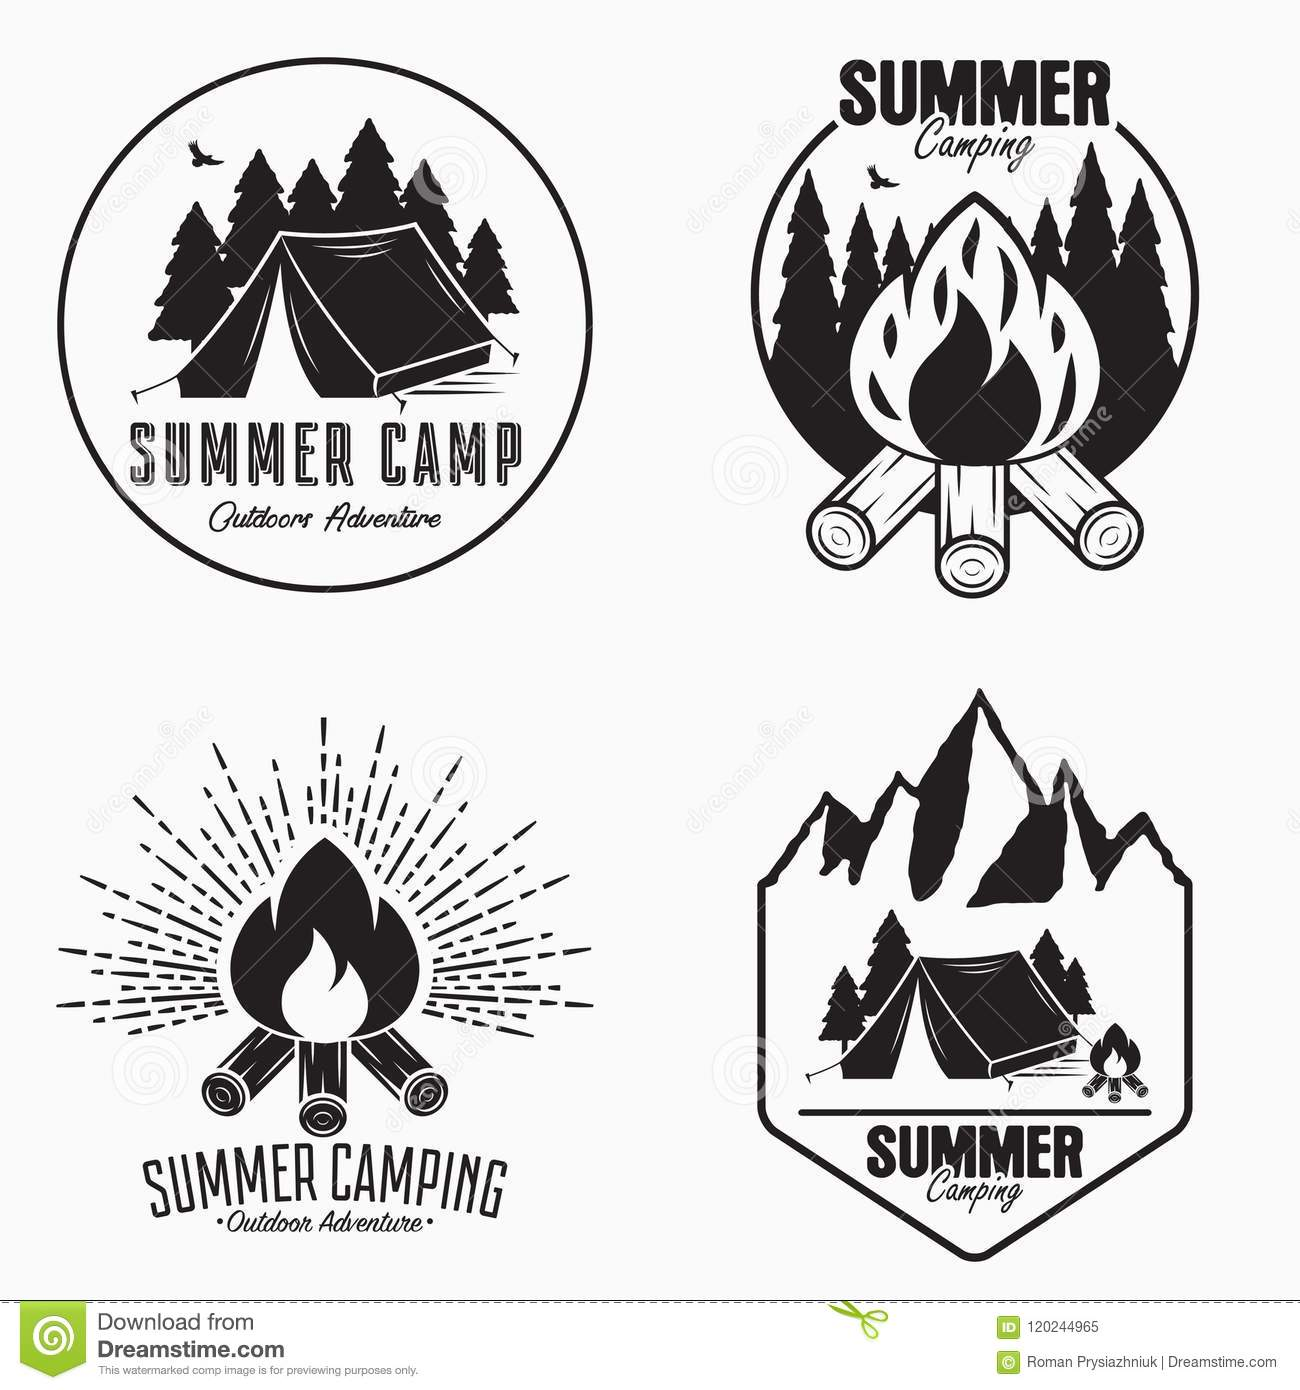 Vintage summer camp logo set. Camping badges and outdoor adventure emblems. Original typography with camping tent, bonfire.